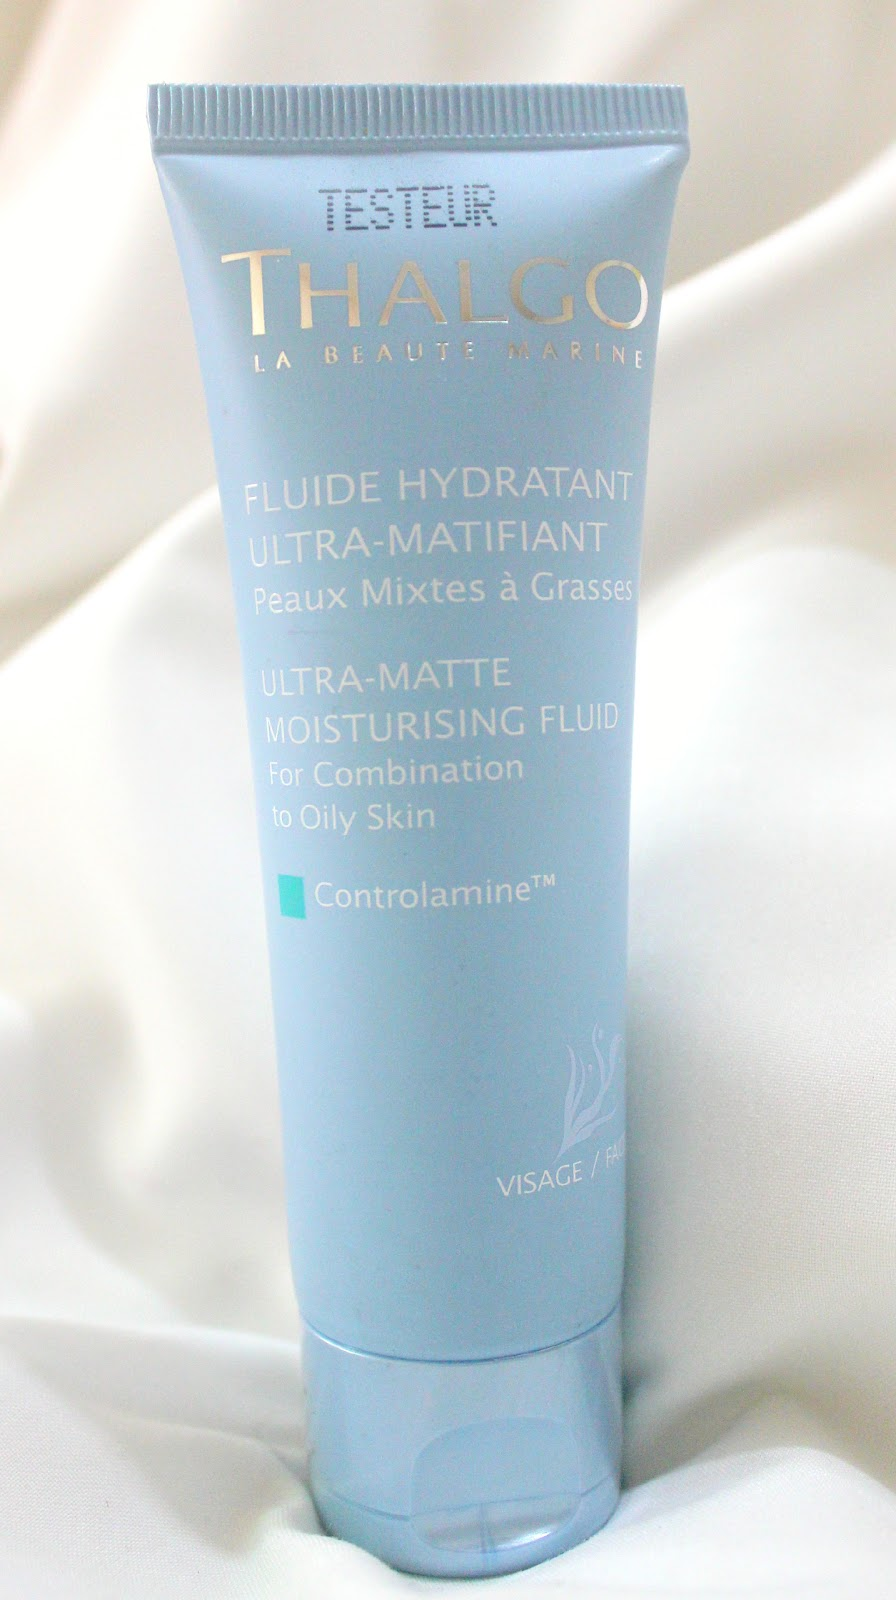 Thalgo Fluide Hydratant Ultra-Matifiant Tube Review